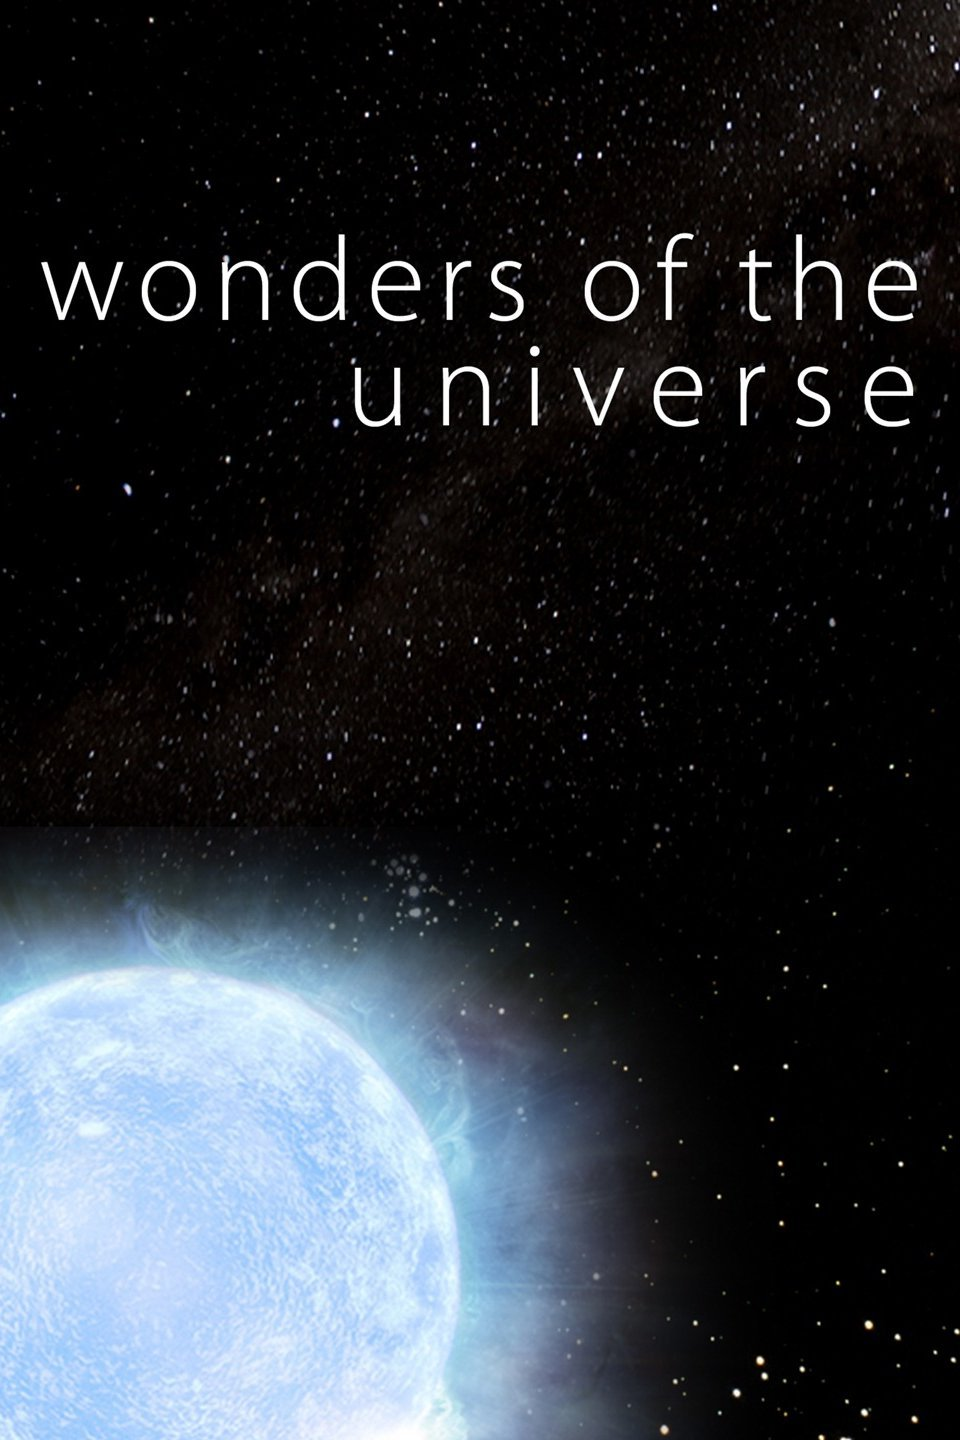 Download Wonders of the Universe BBC Torrent